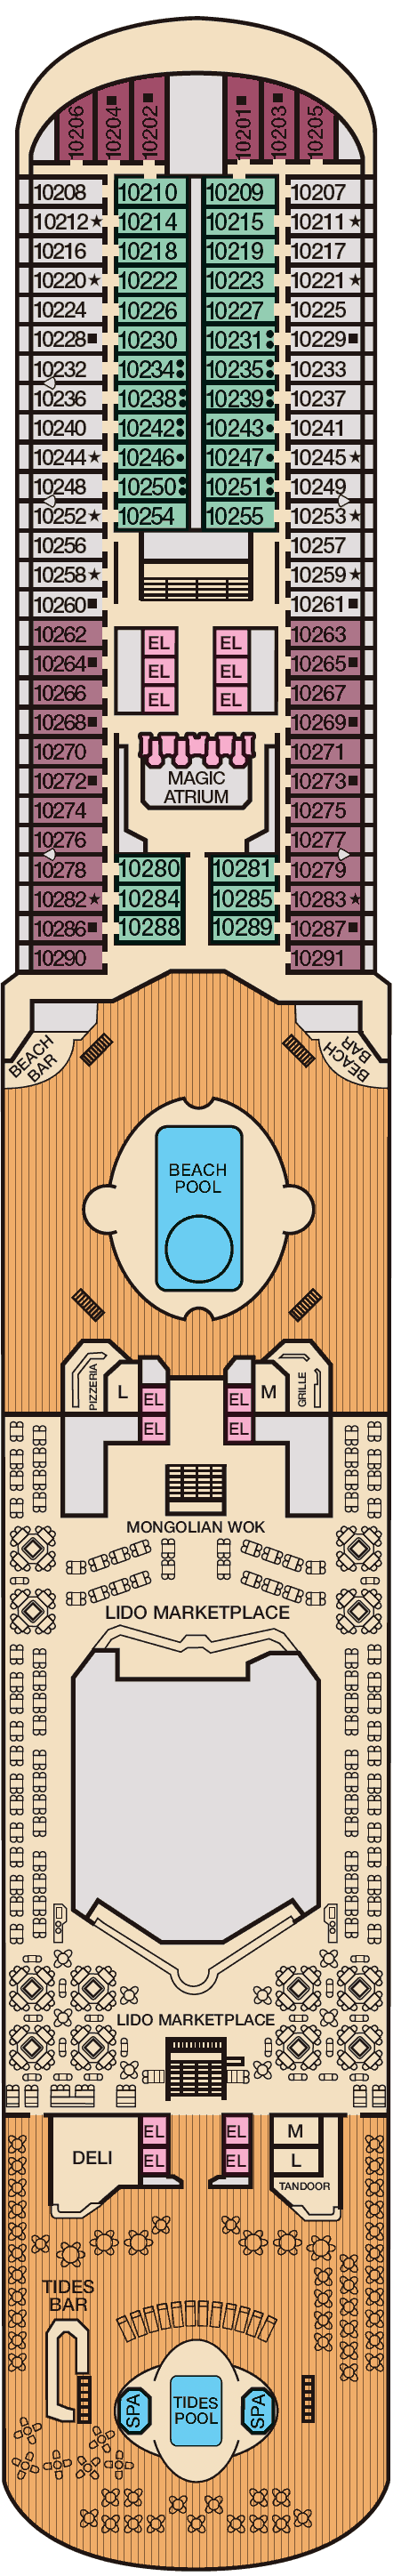 Carnival magic deck plans sky sun spa panorama lido baanklon Choice Image